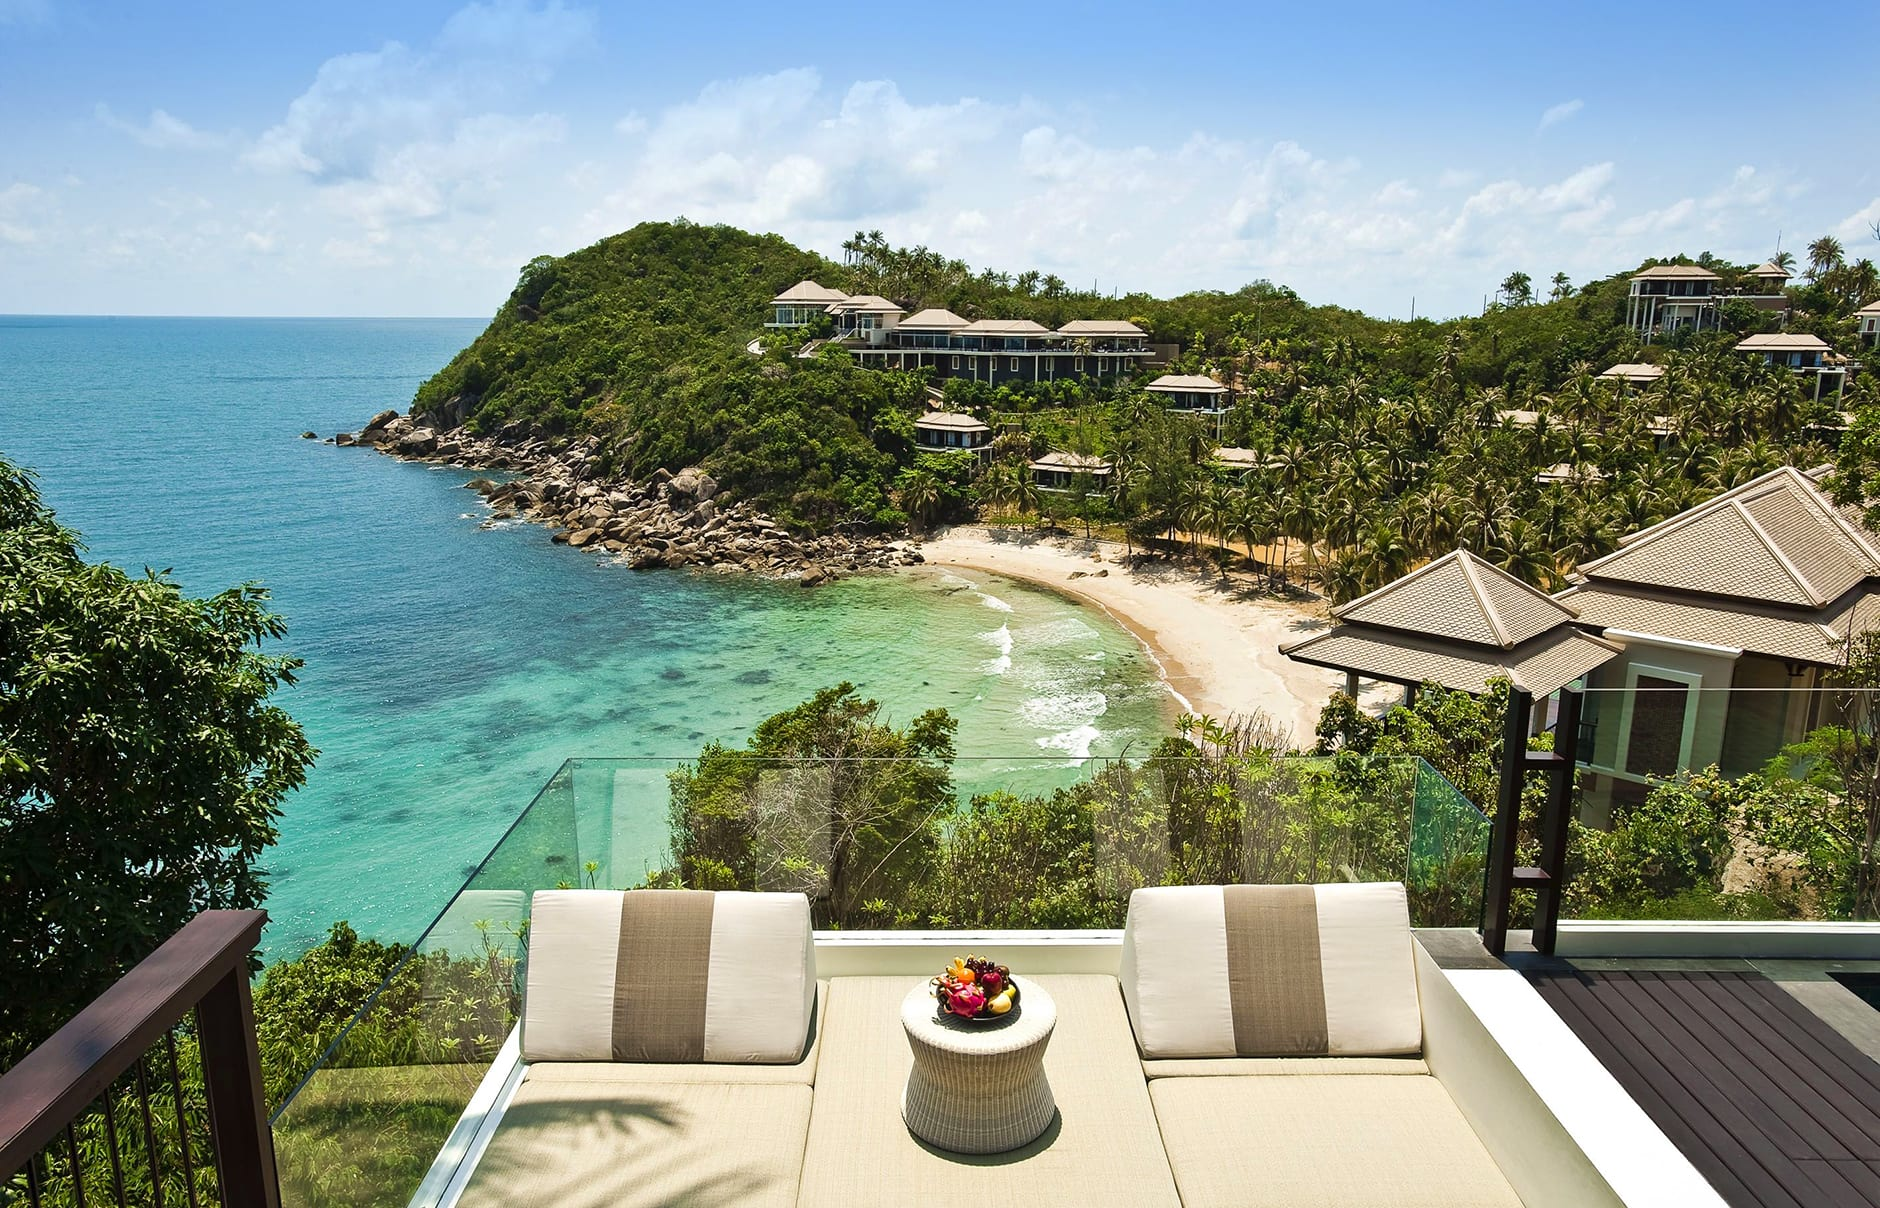 Banyan tree samui koh samui luxury hotels travelplusstyle for Hotels koh tao